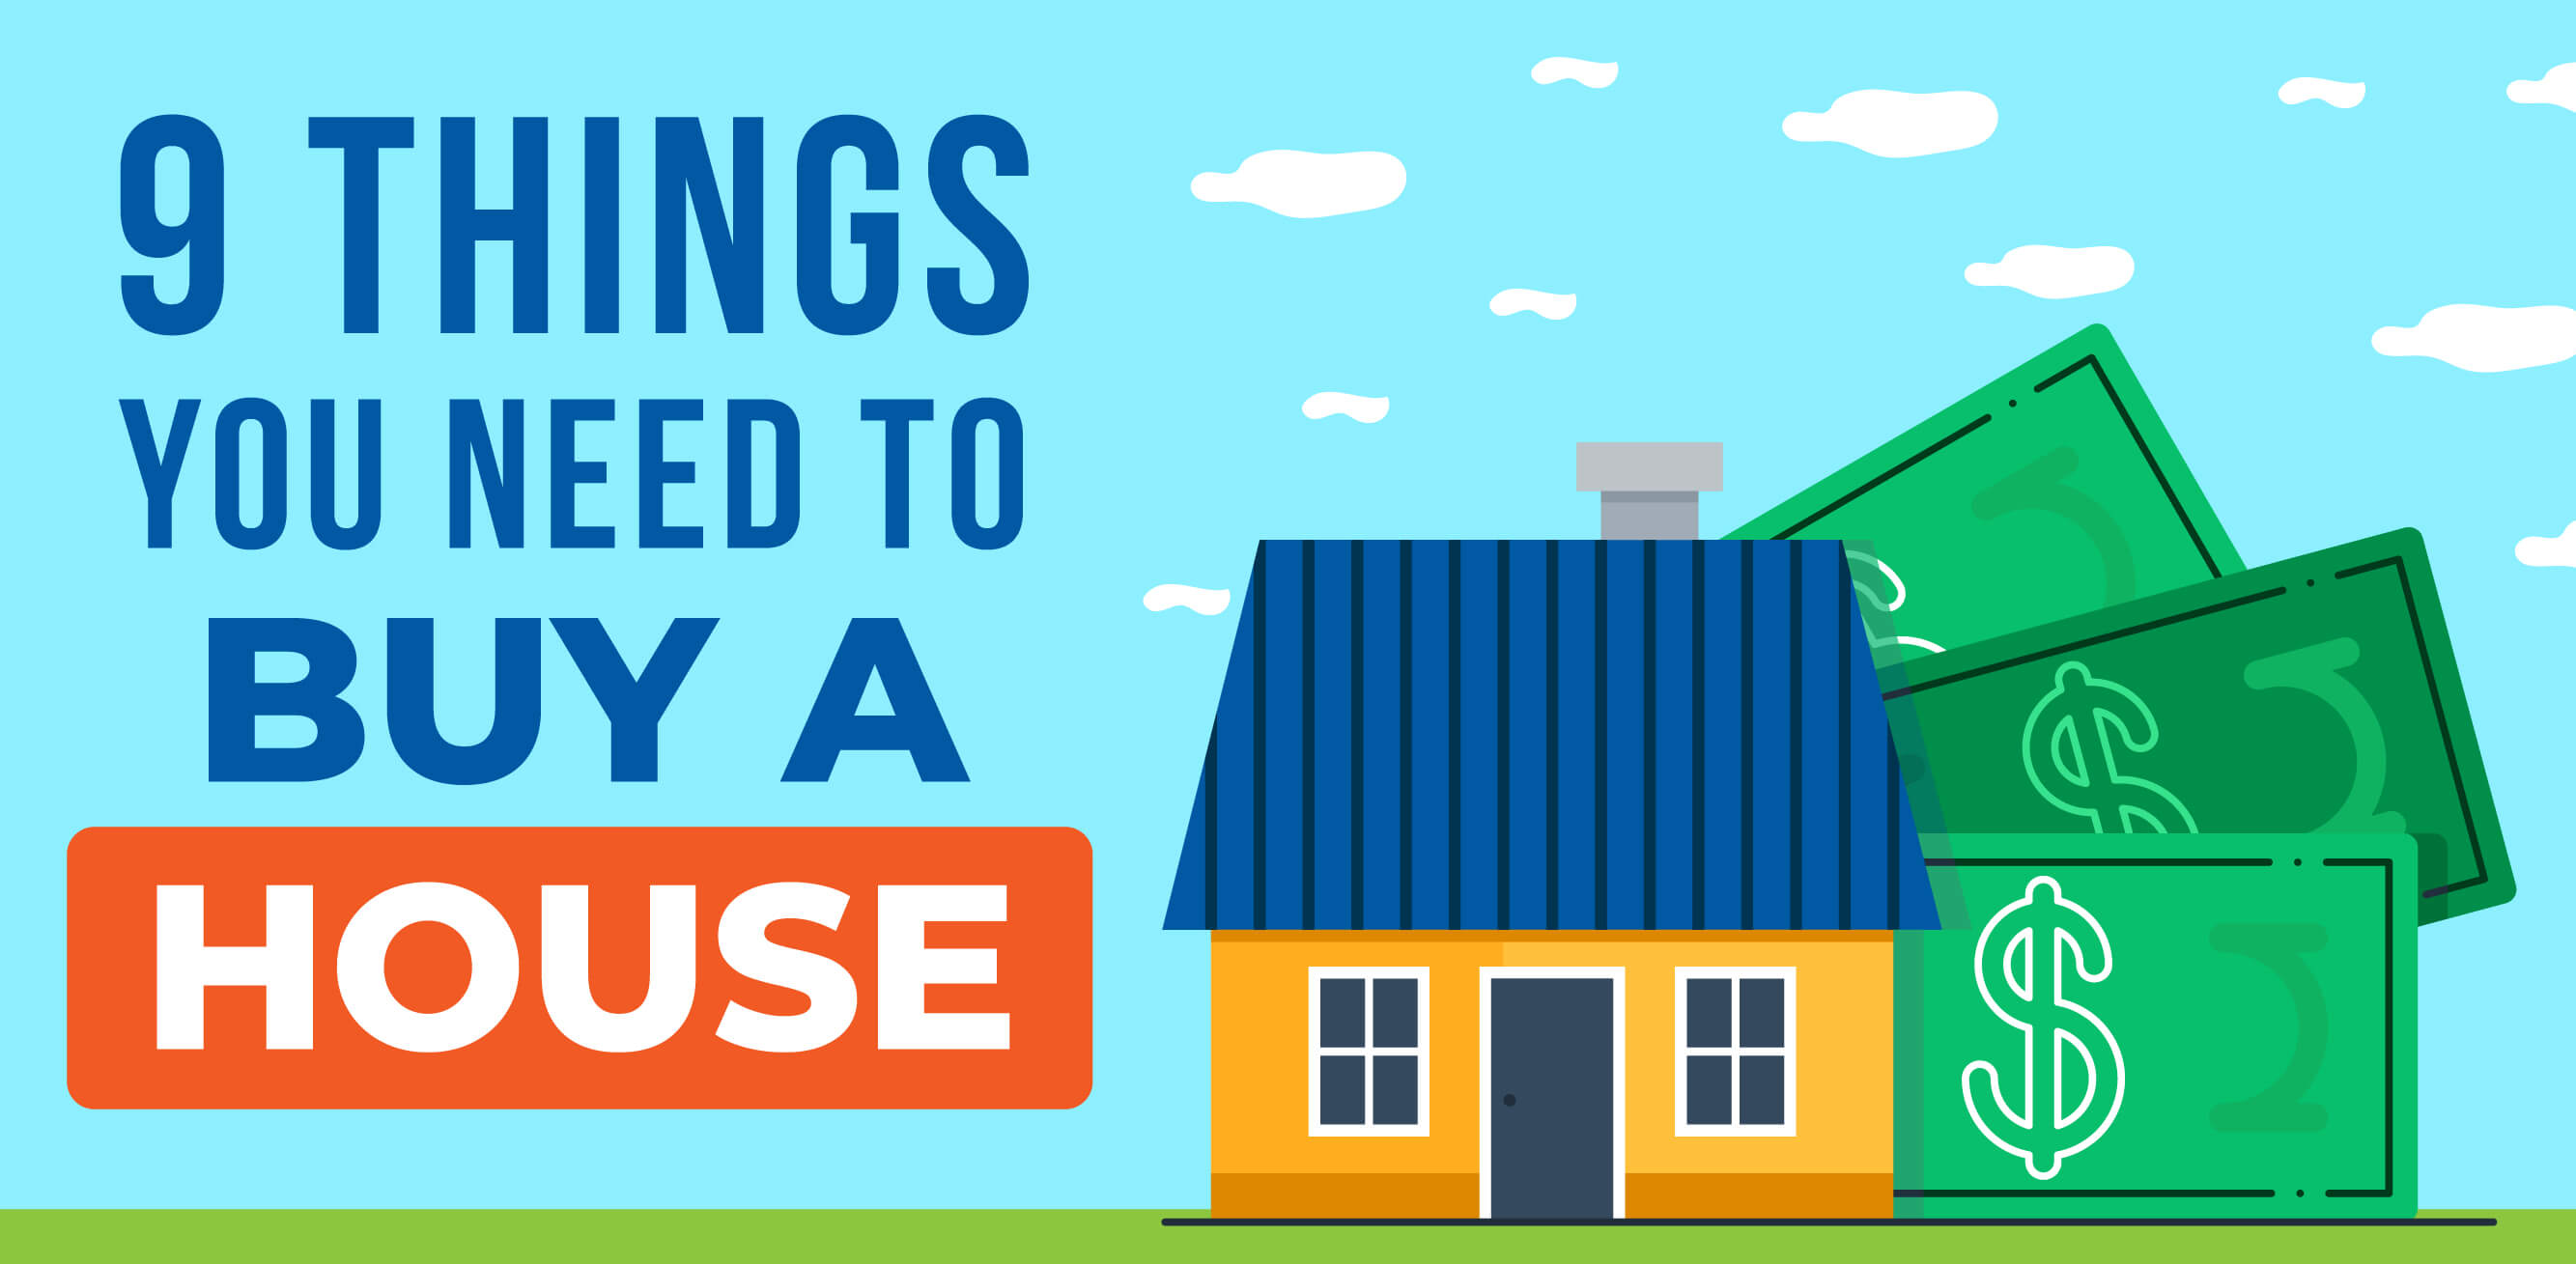 What do you need to buy a house? 9 Things you will need to buy a home!